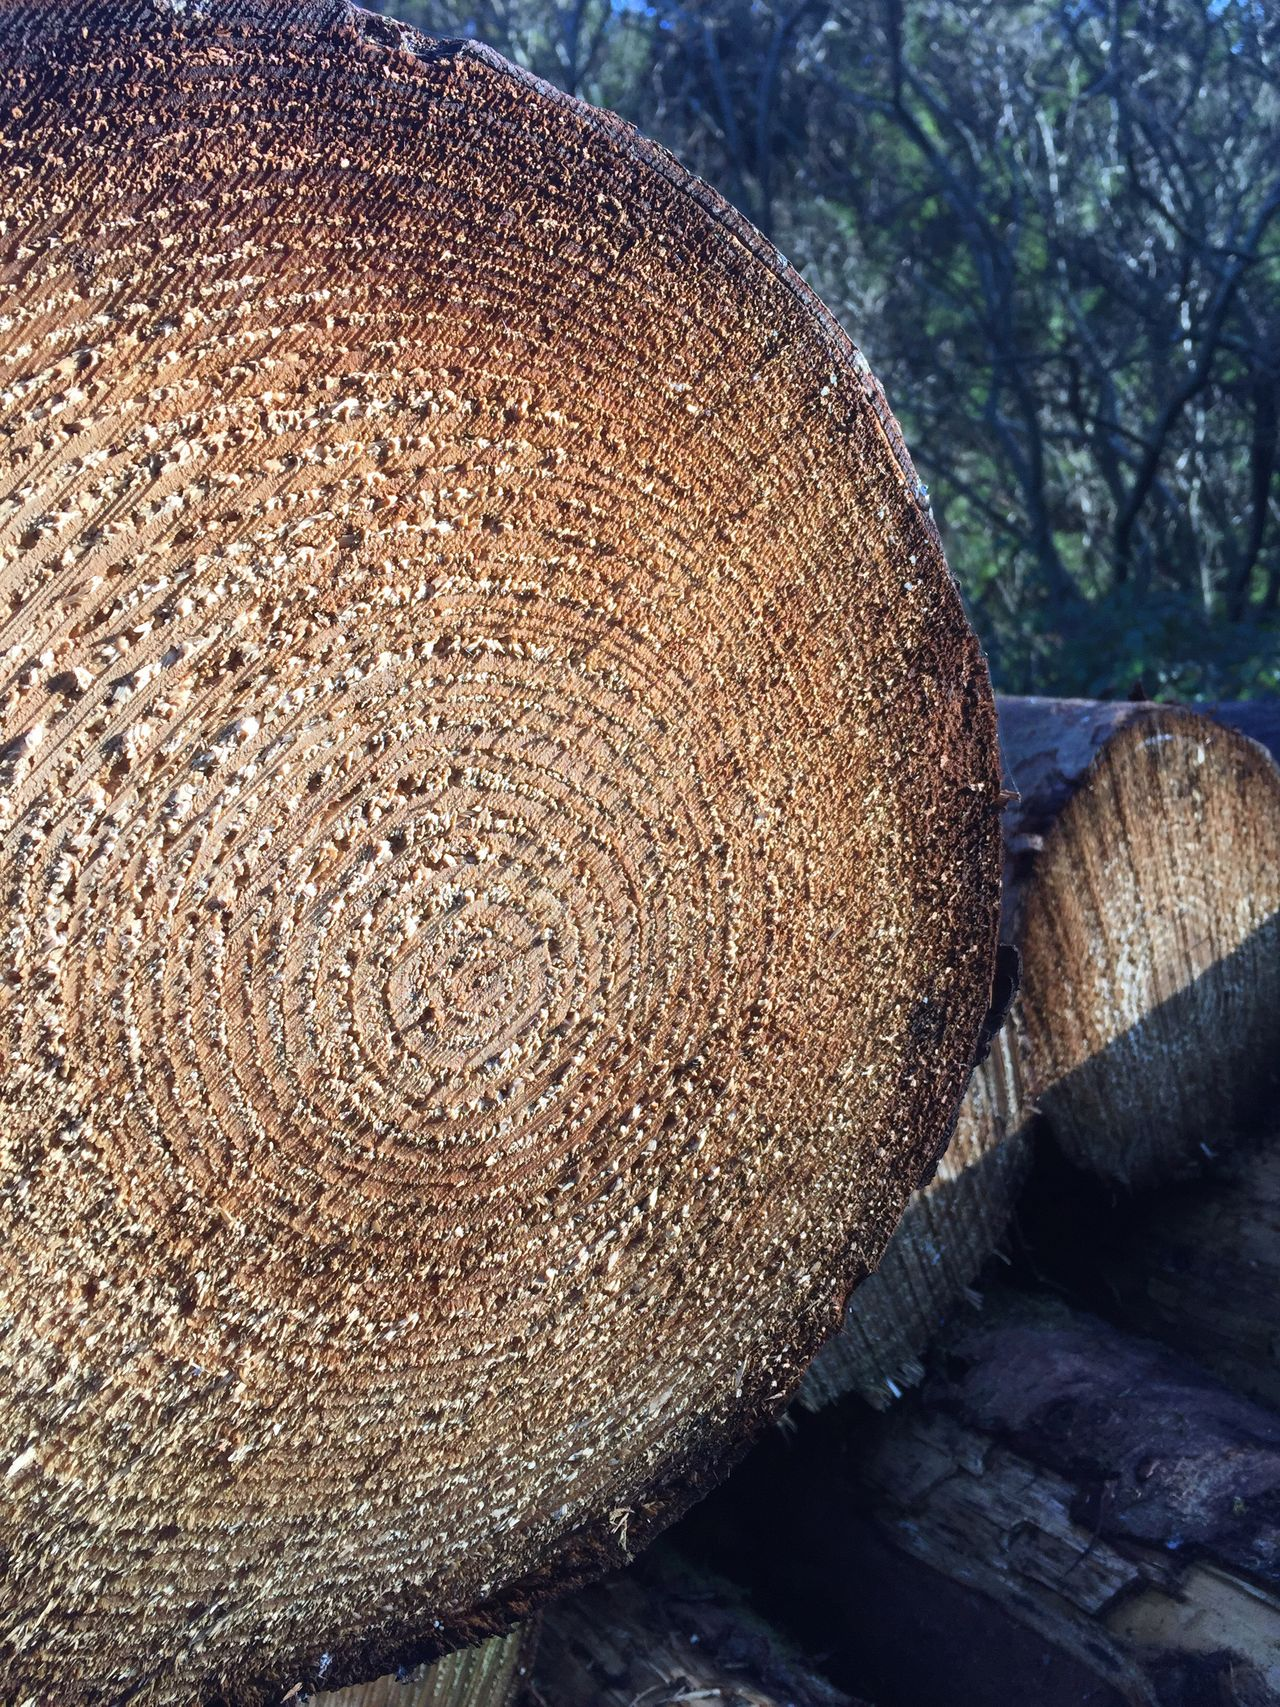 Close-up Log Lumber Industry No People Textured  Timber Nature Day Freshness No Filter, No Edit, Just Photography Mountain Scenics Tree Trunk